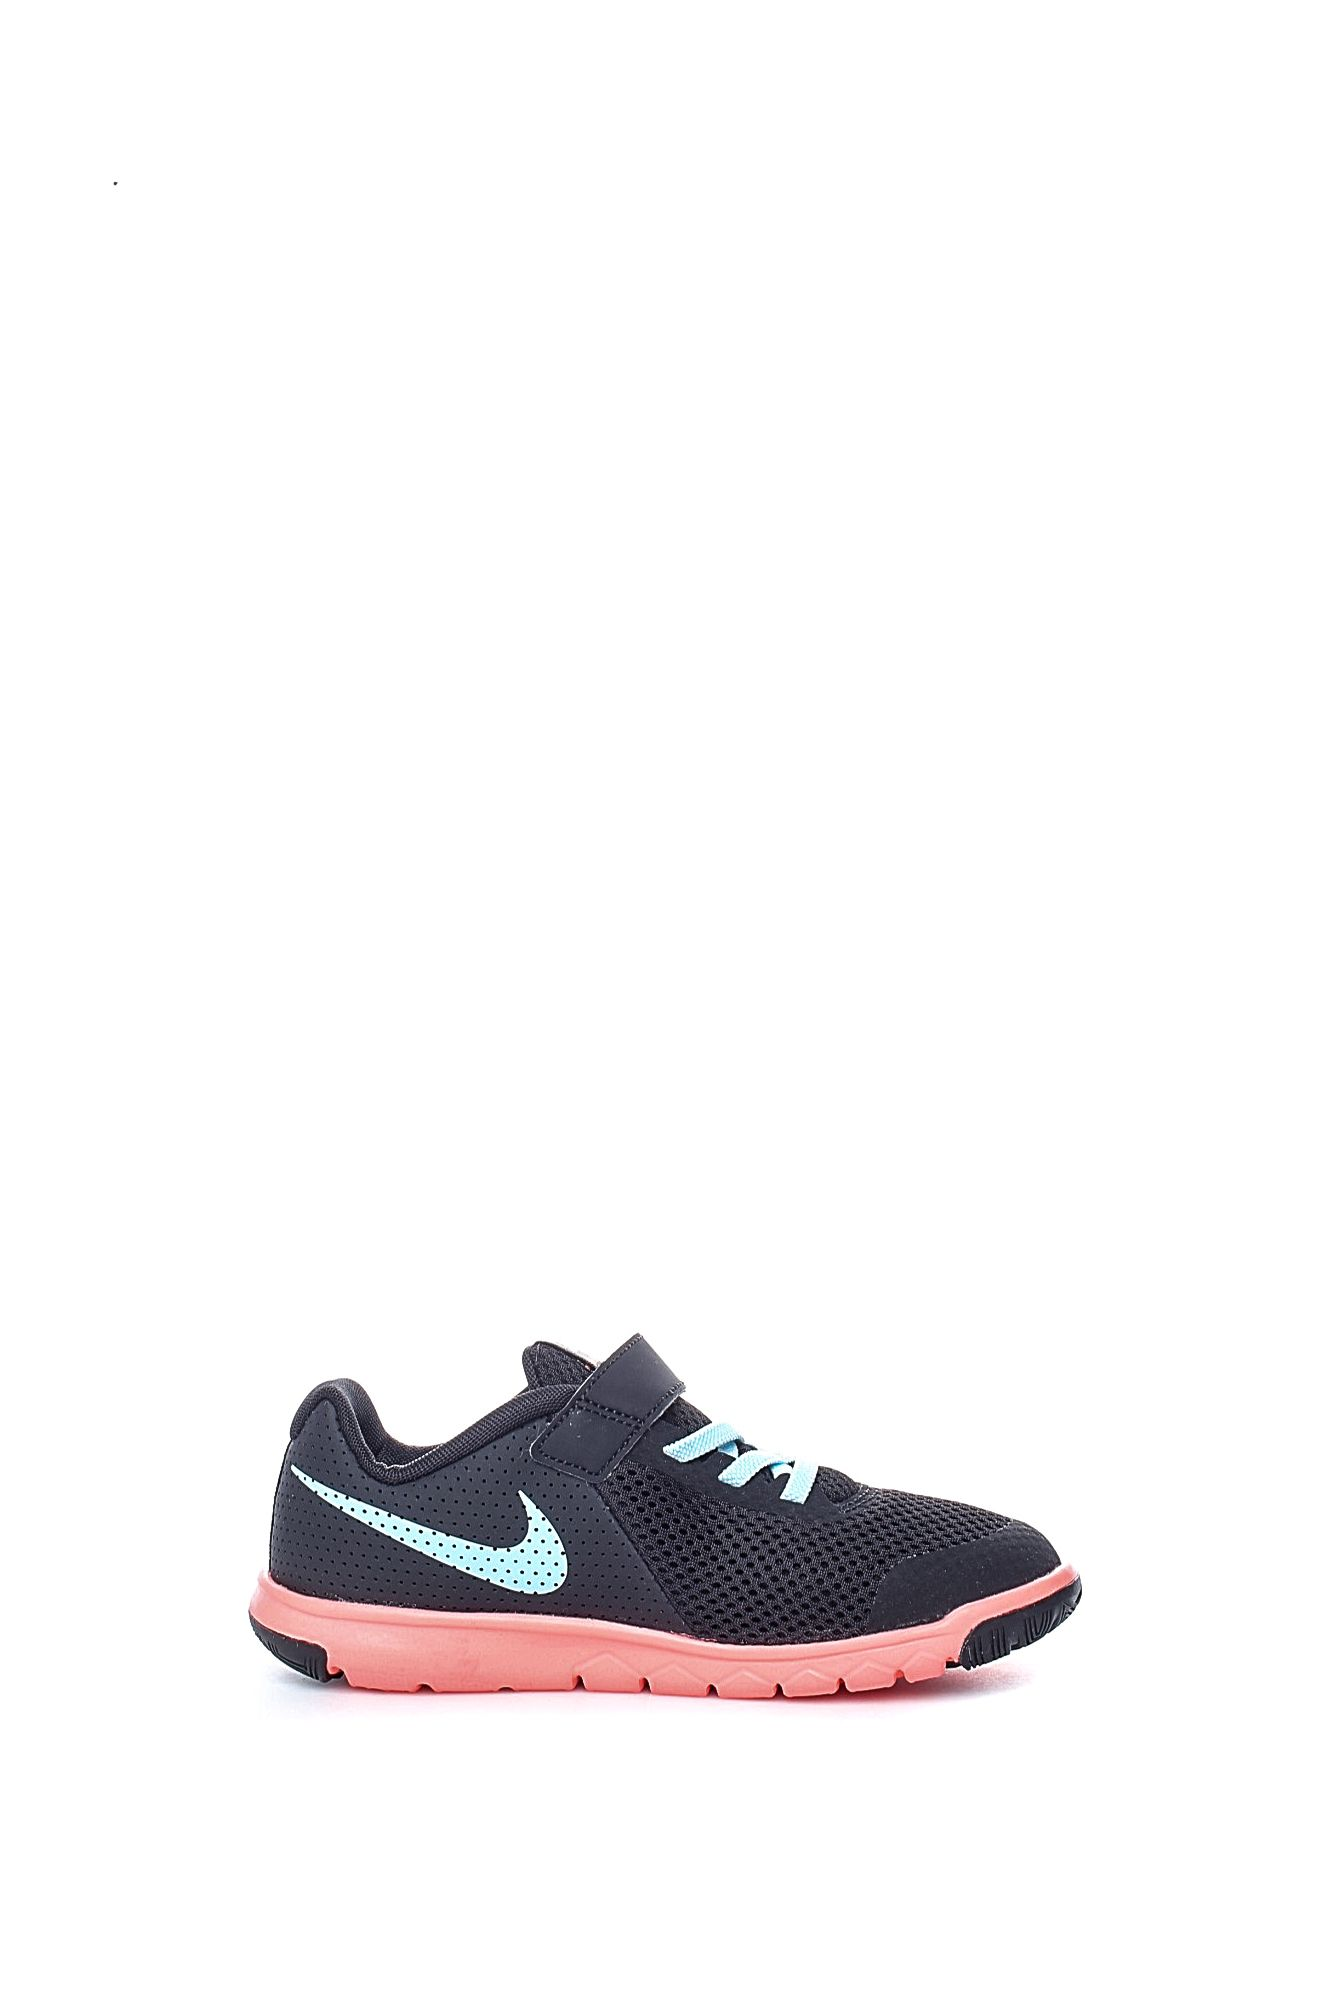 5594a7bc98d NIKE – Παιδικά αθλητικά παπούτσια Nike FLEX EXPERIENCE 5 (PSV) μαύρα  Παιδικά/Girls